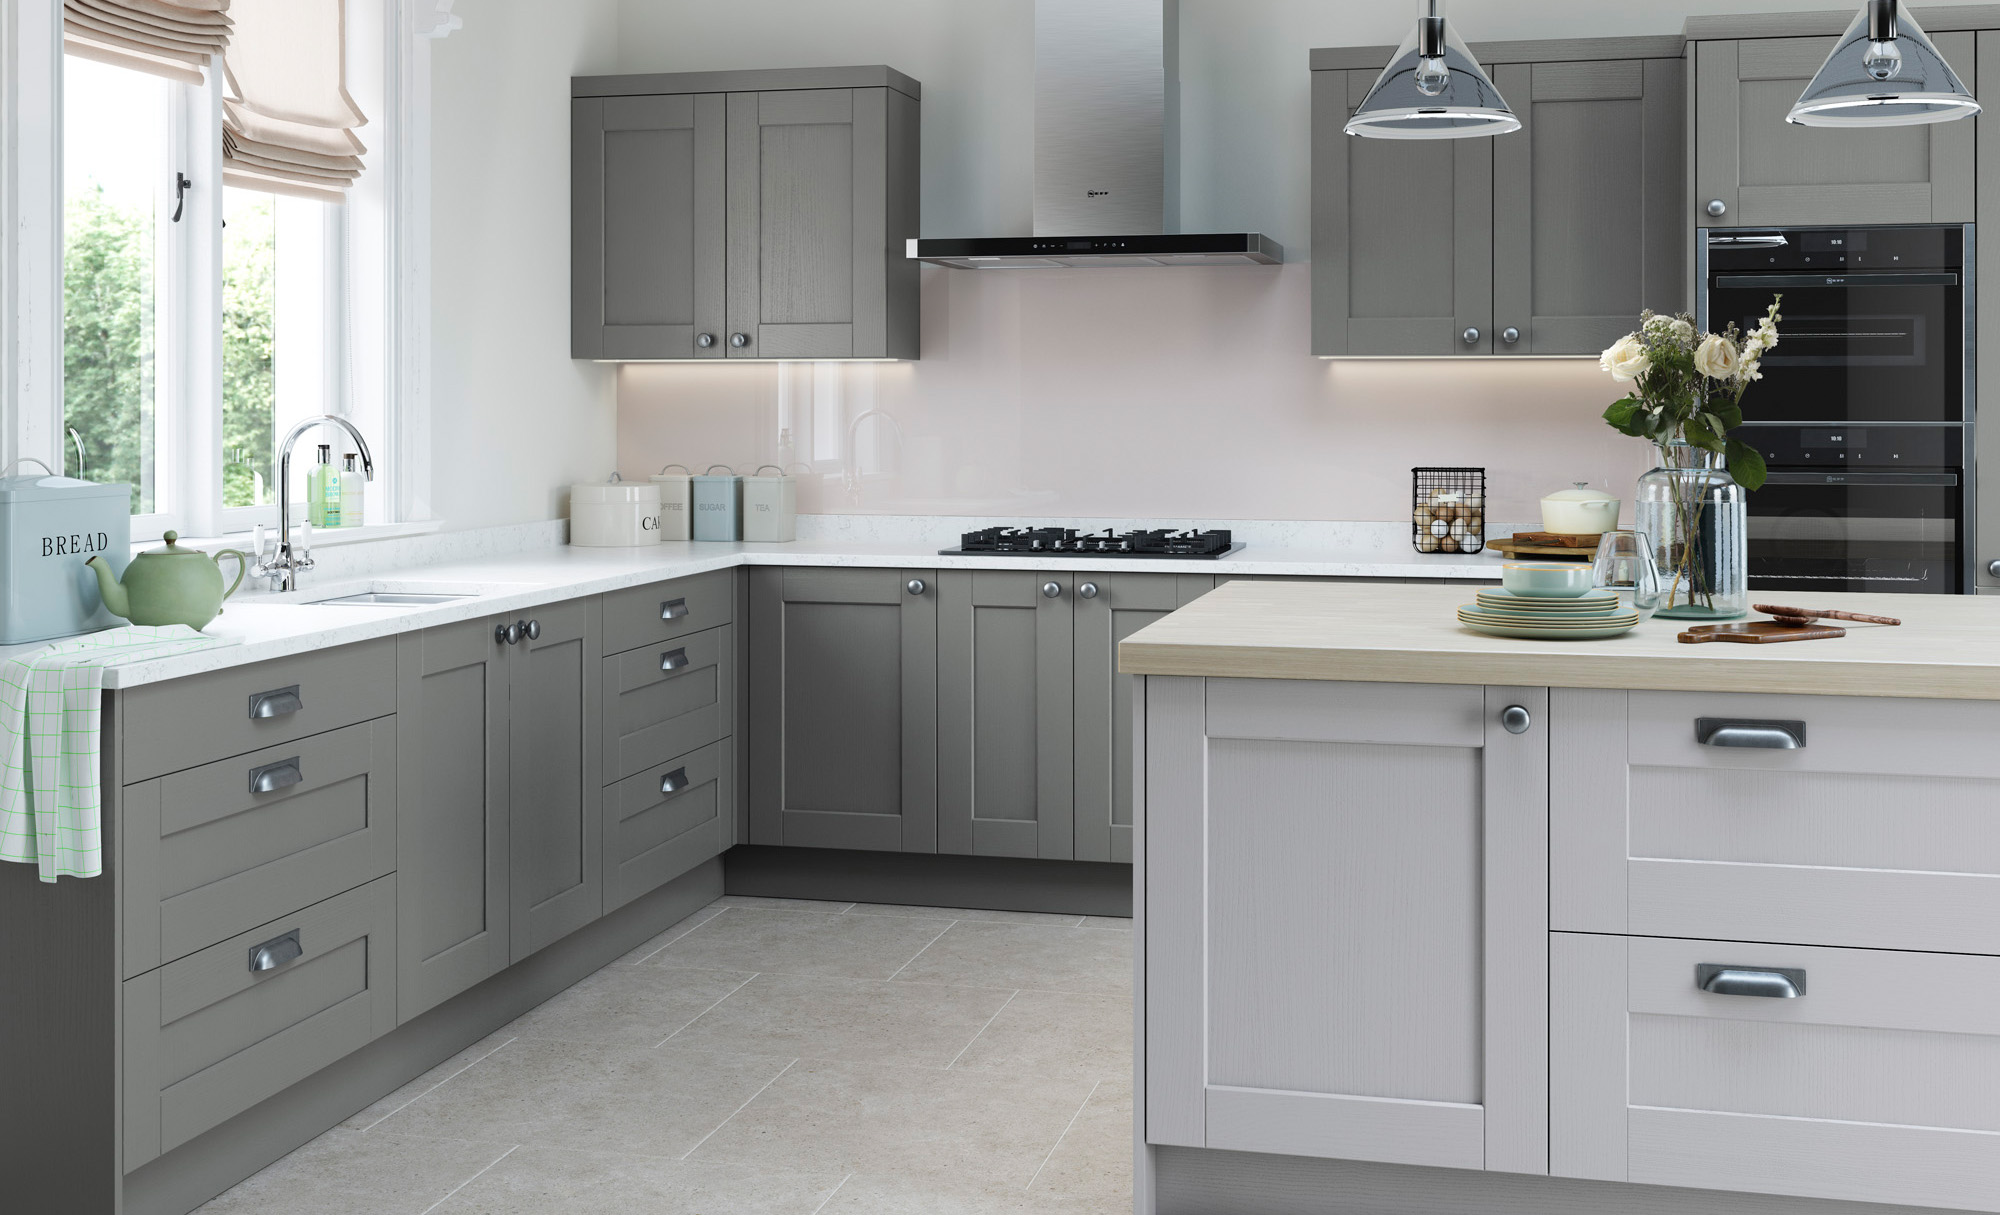 Shaker kitchen doors kensington classic uform for Kitchen ideas 2018 grey